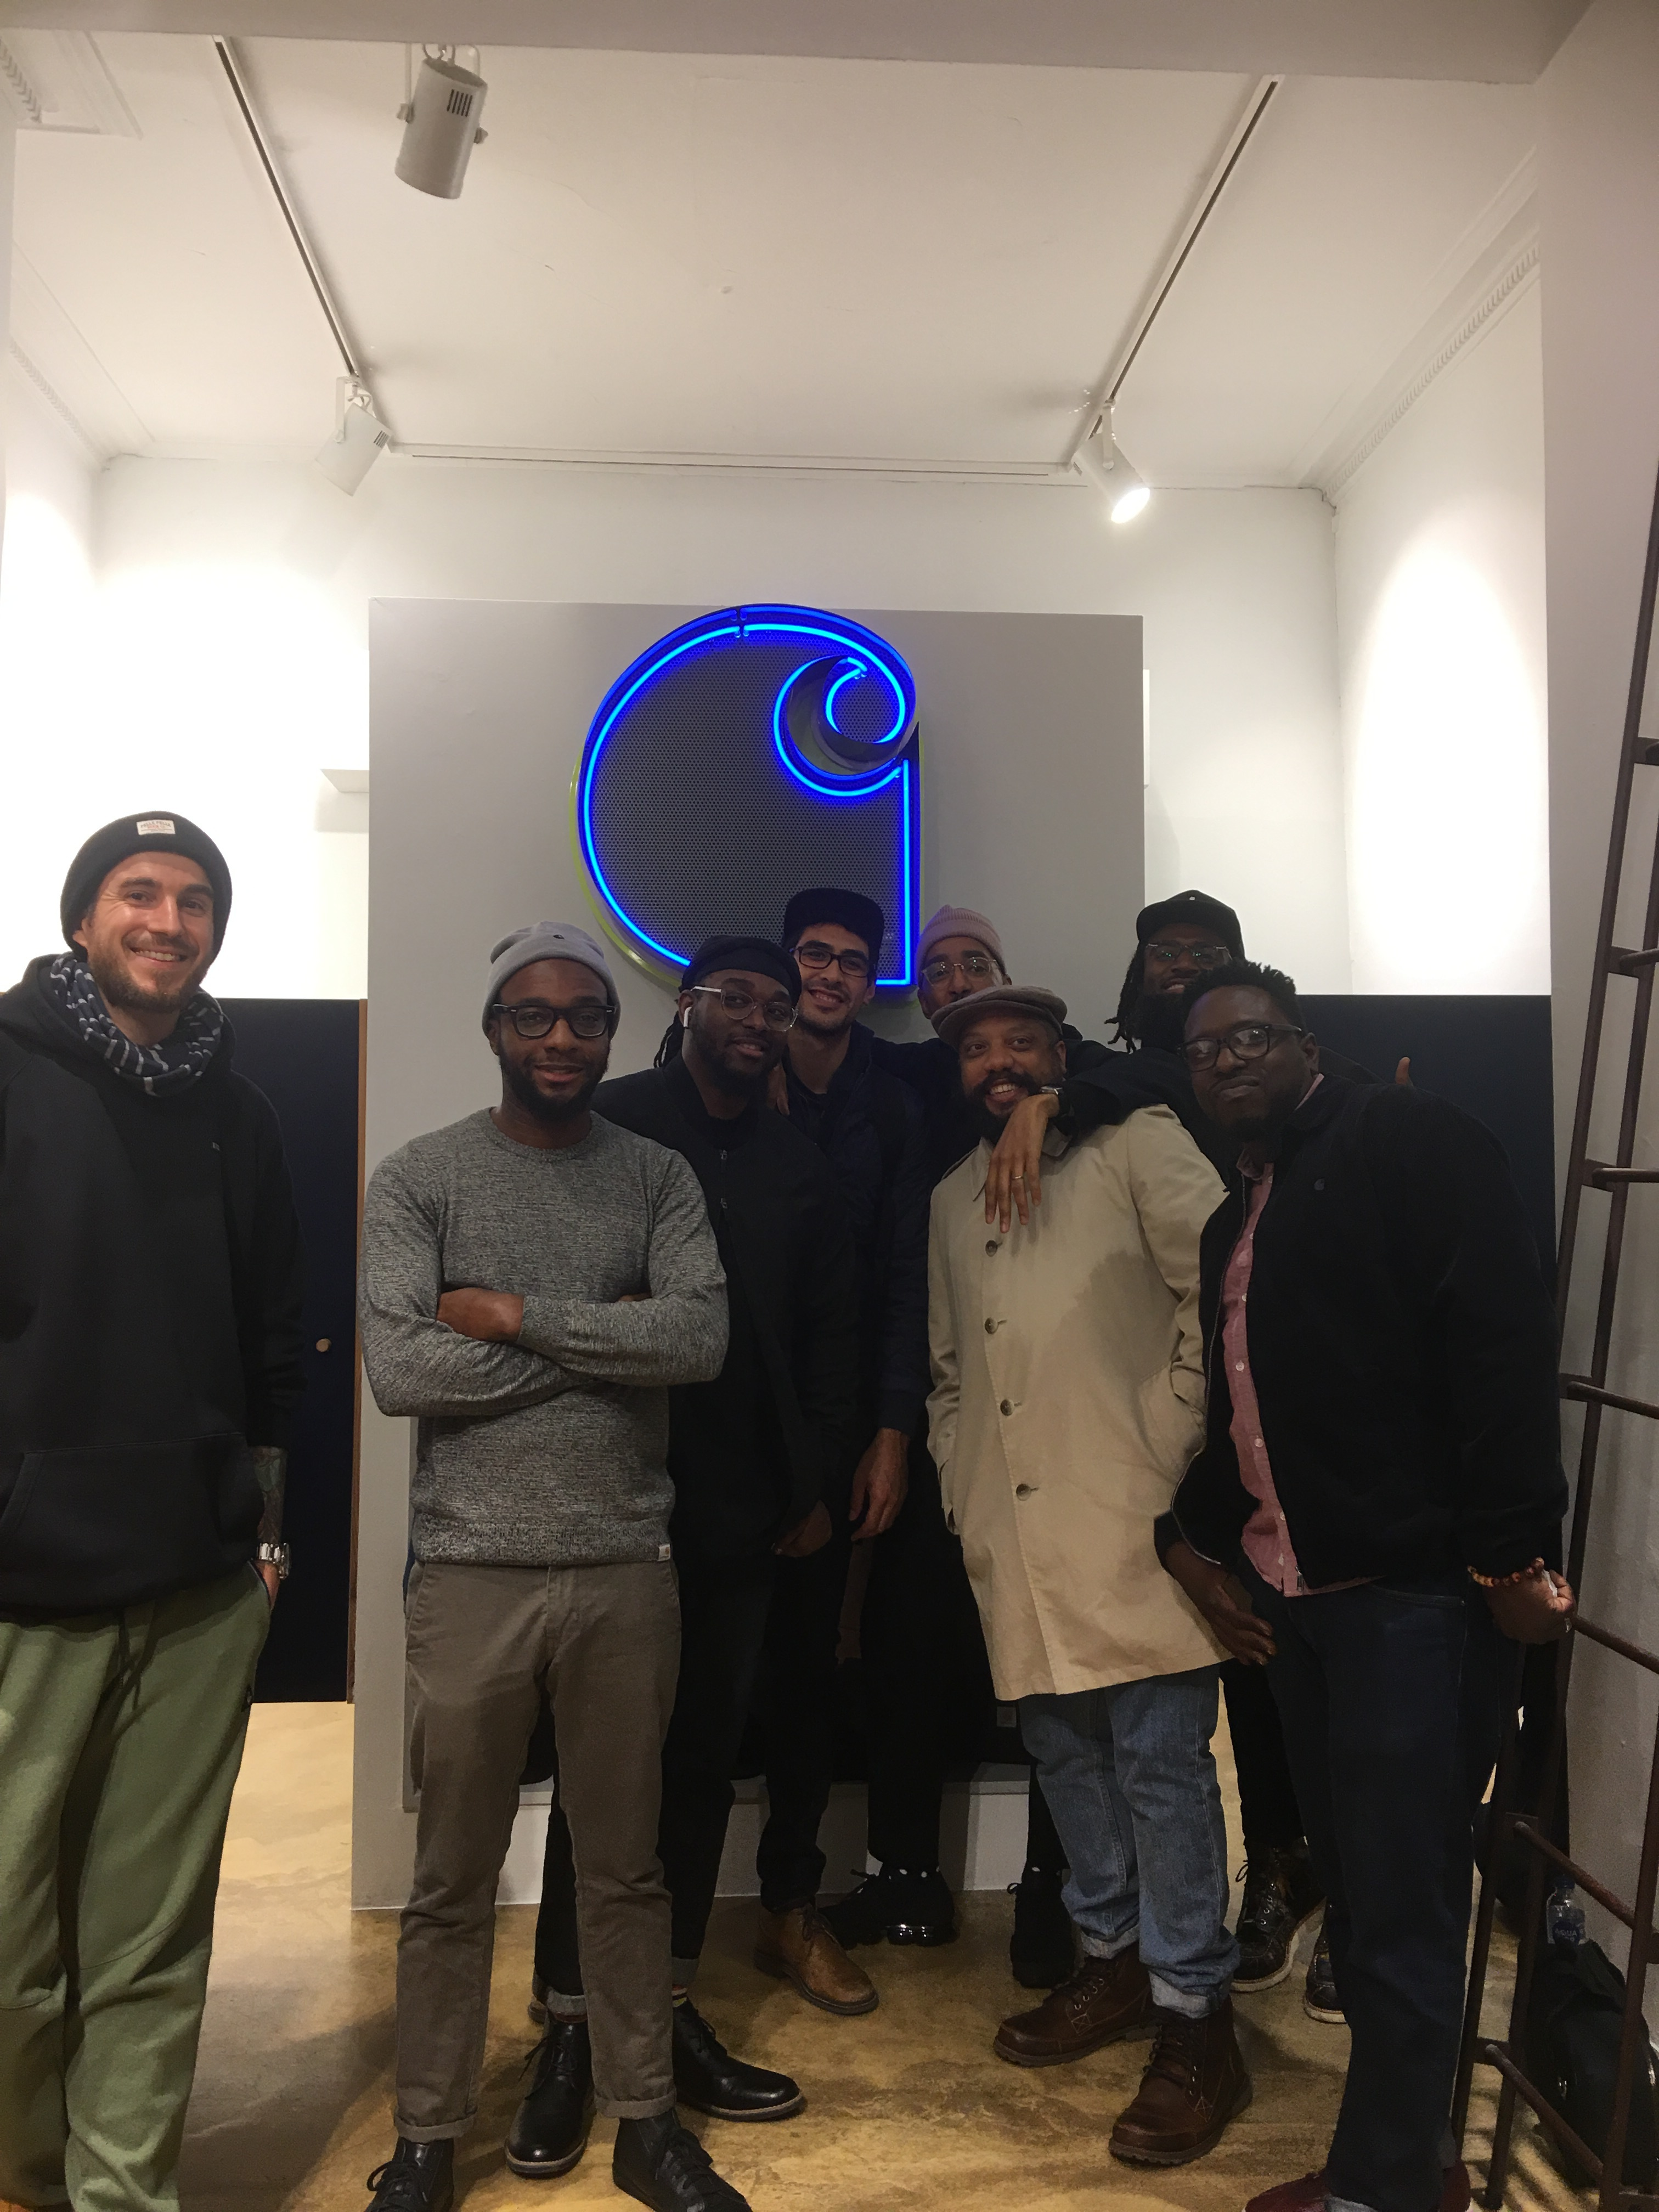 Oddisee and thegoodcompny on the Island tour, in the Carhartt WIP store , Krystalgade .